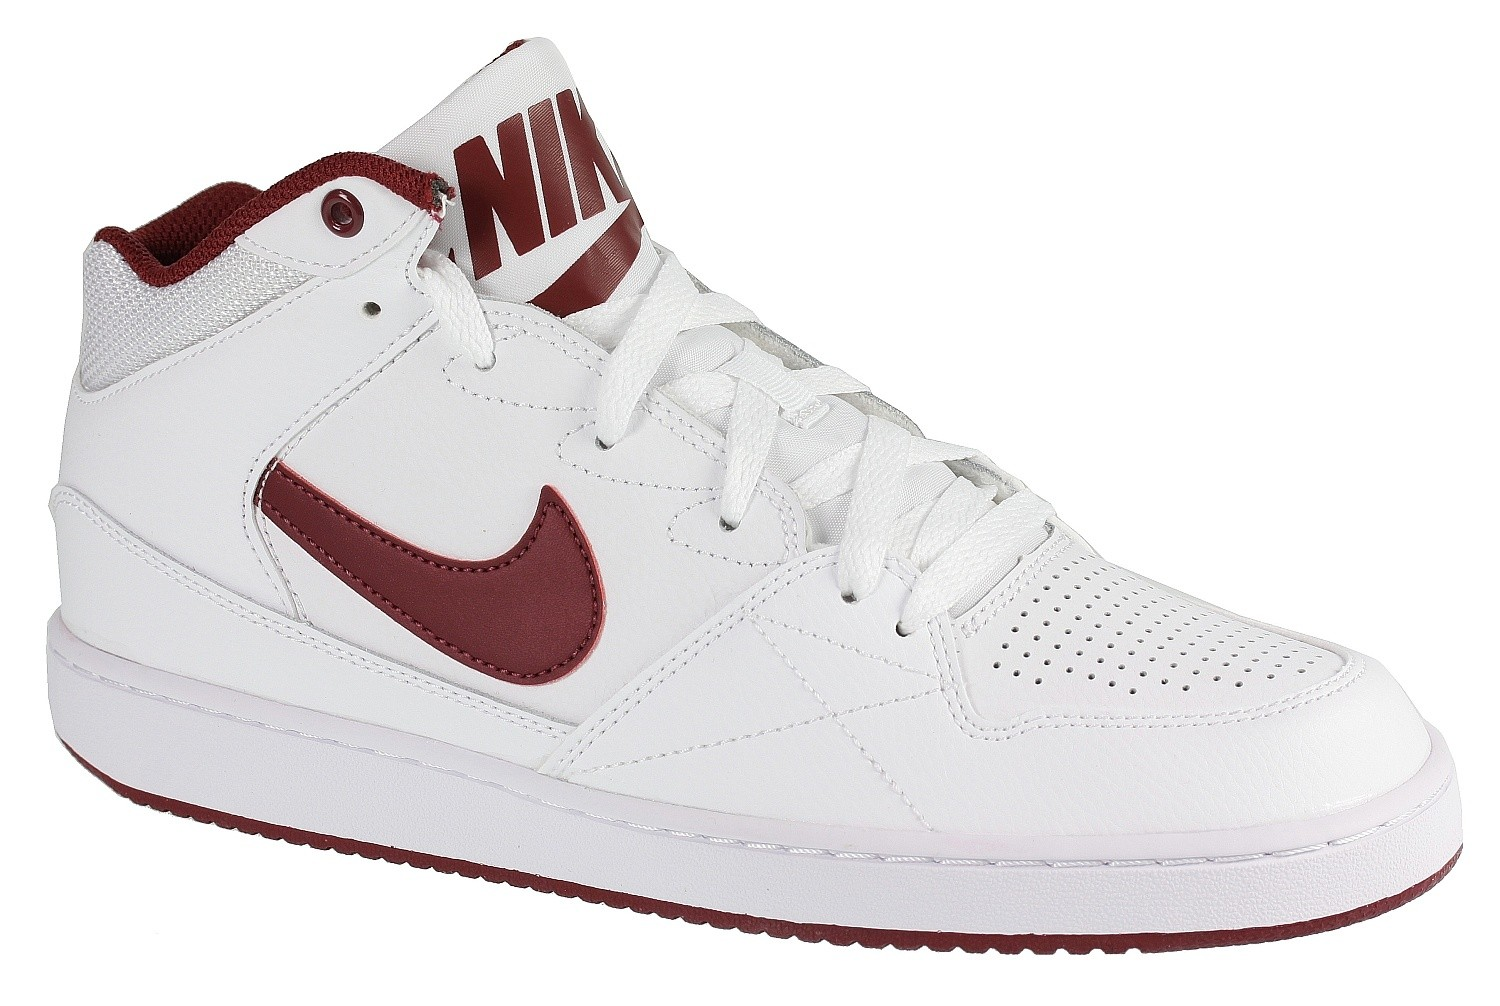 Schuhes Nike Priority Mid Team ROT Weiß snowboard online.eu